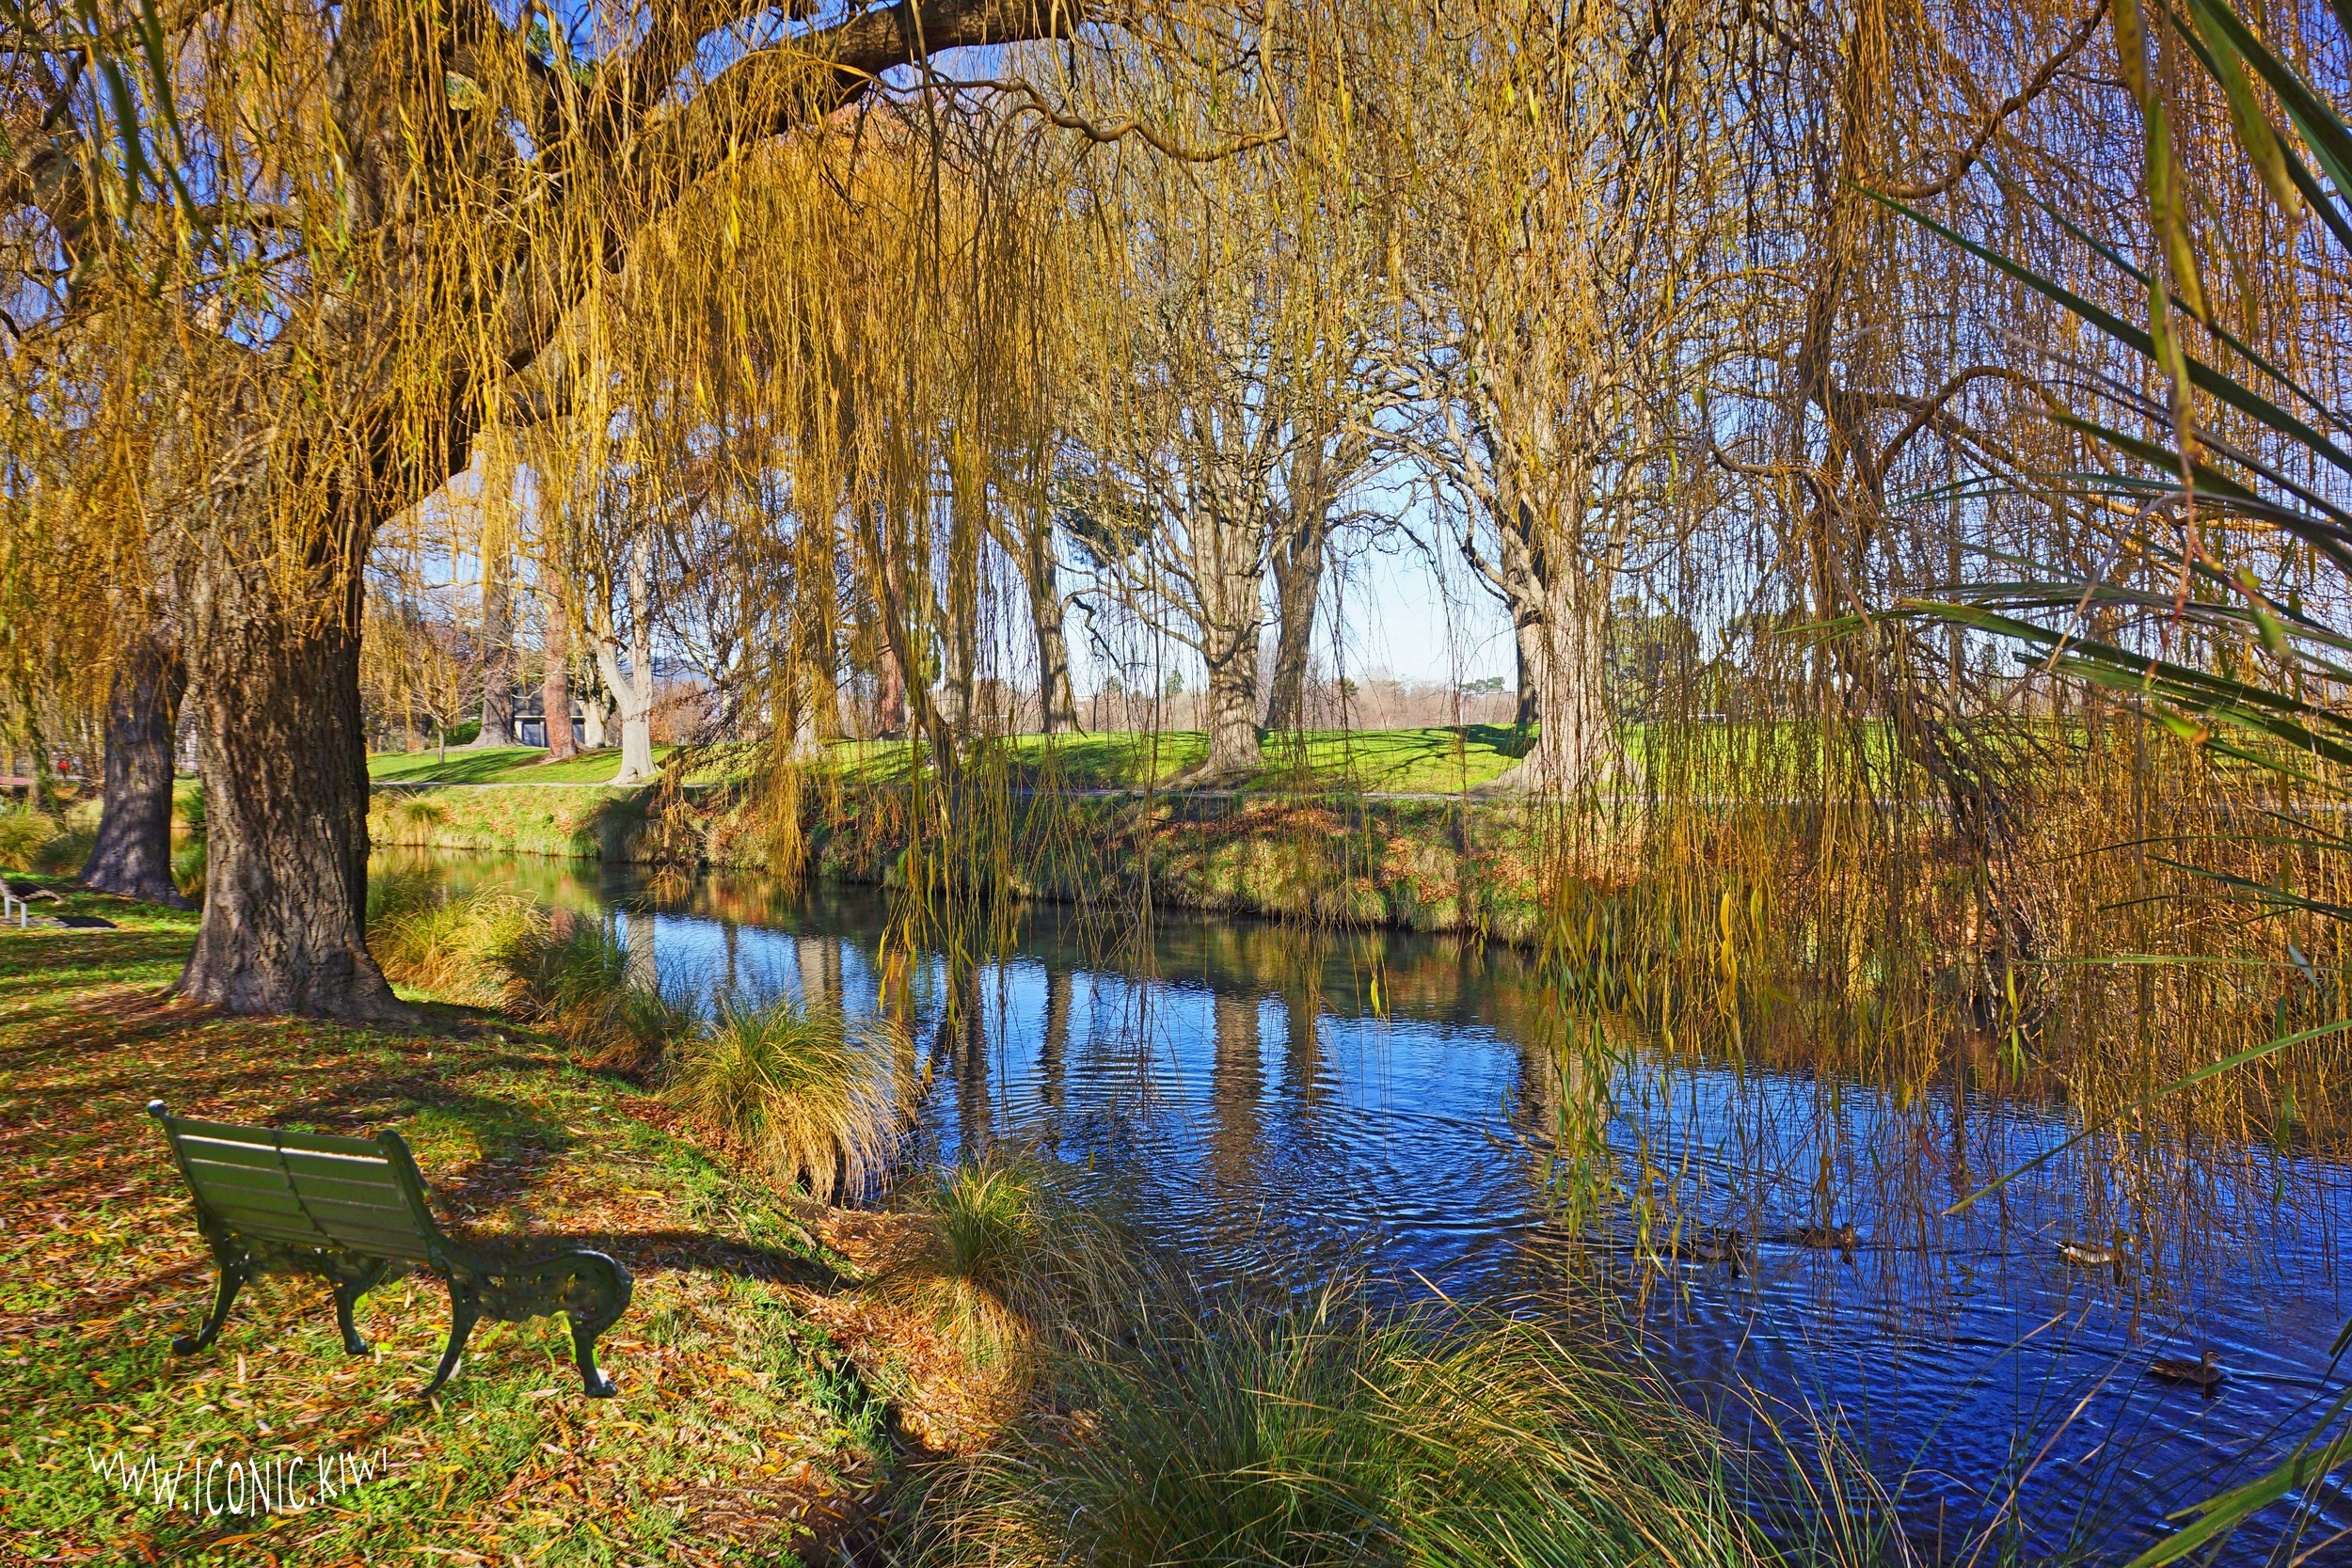 A beautiful winter's day for a meander along the River Avon in Christchurch, New Zealand